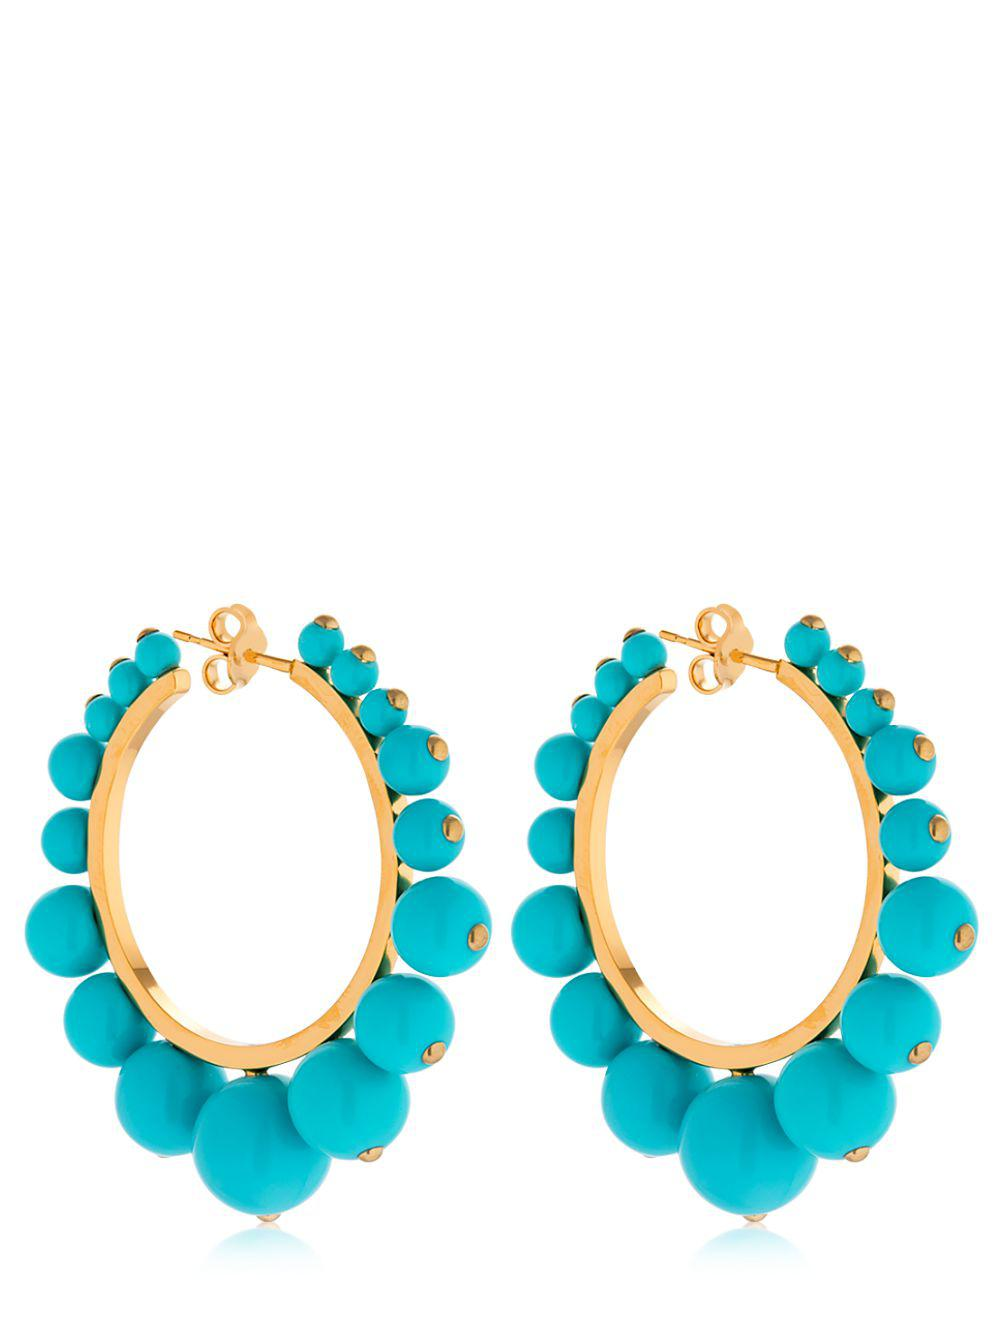 Ana Small Earrings in Coral Color Pearls and 18K Gold-Plated Brass Aur kqNOekrSuV